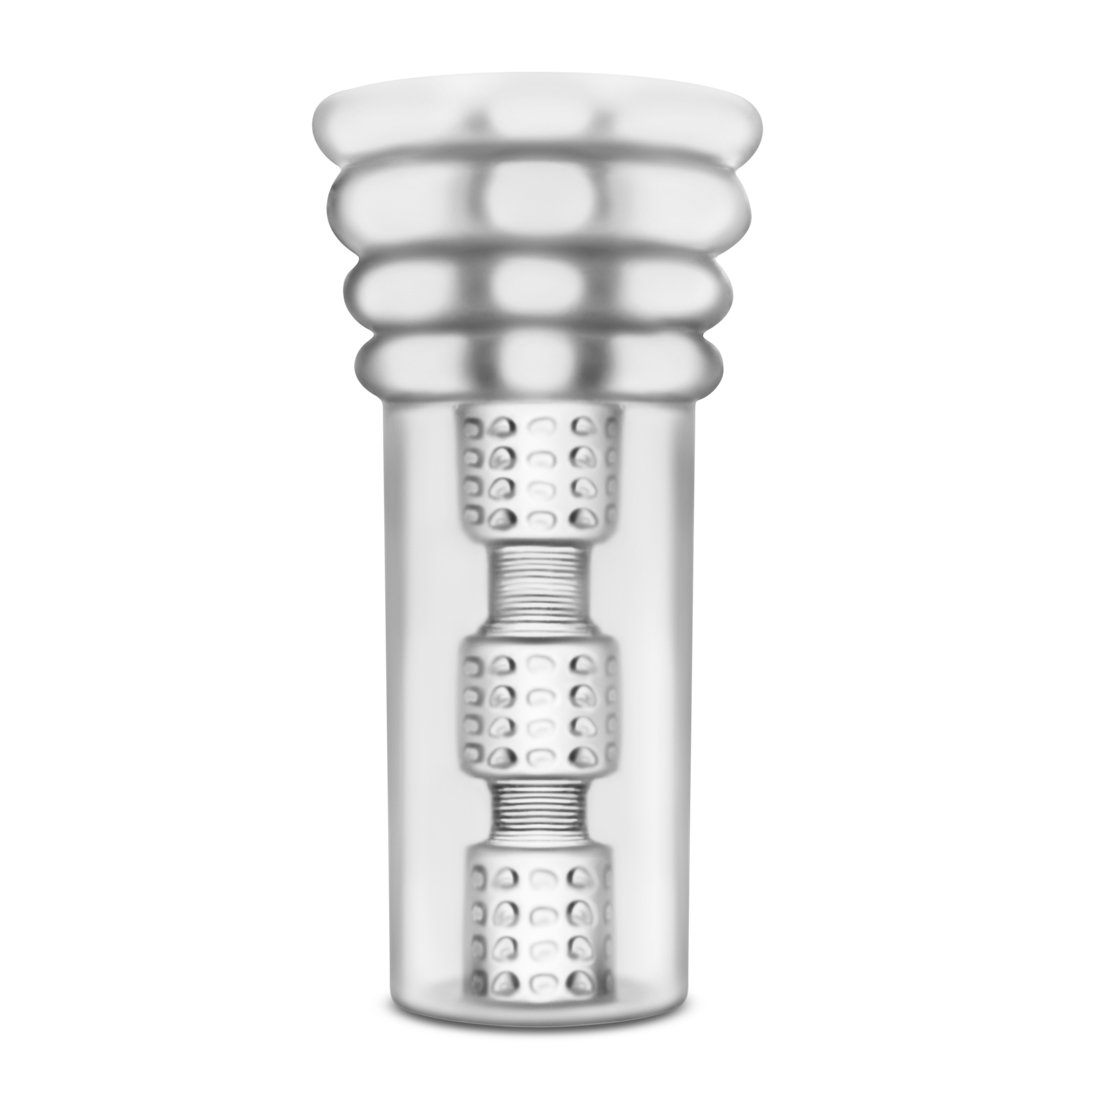 Eden Soft Textured Male Masturbator - Soft Stroker Suction - Great Couples Play - Sex Toy for Men (Clear)